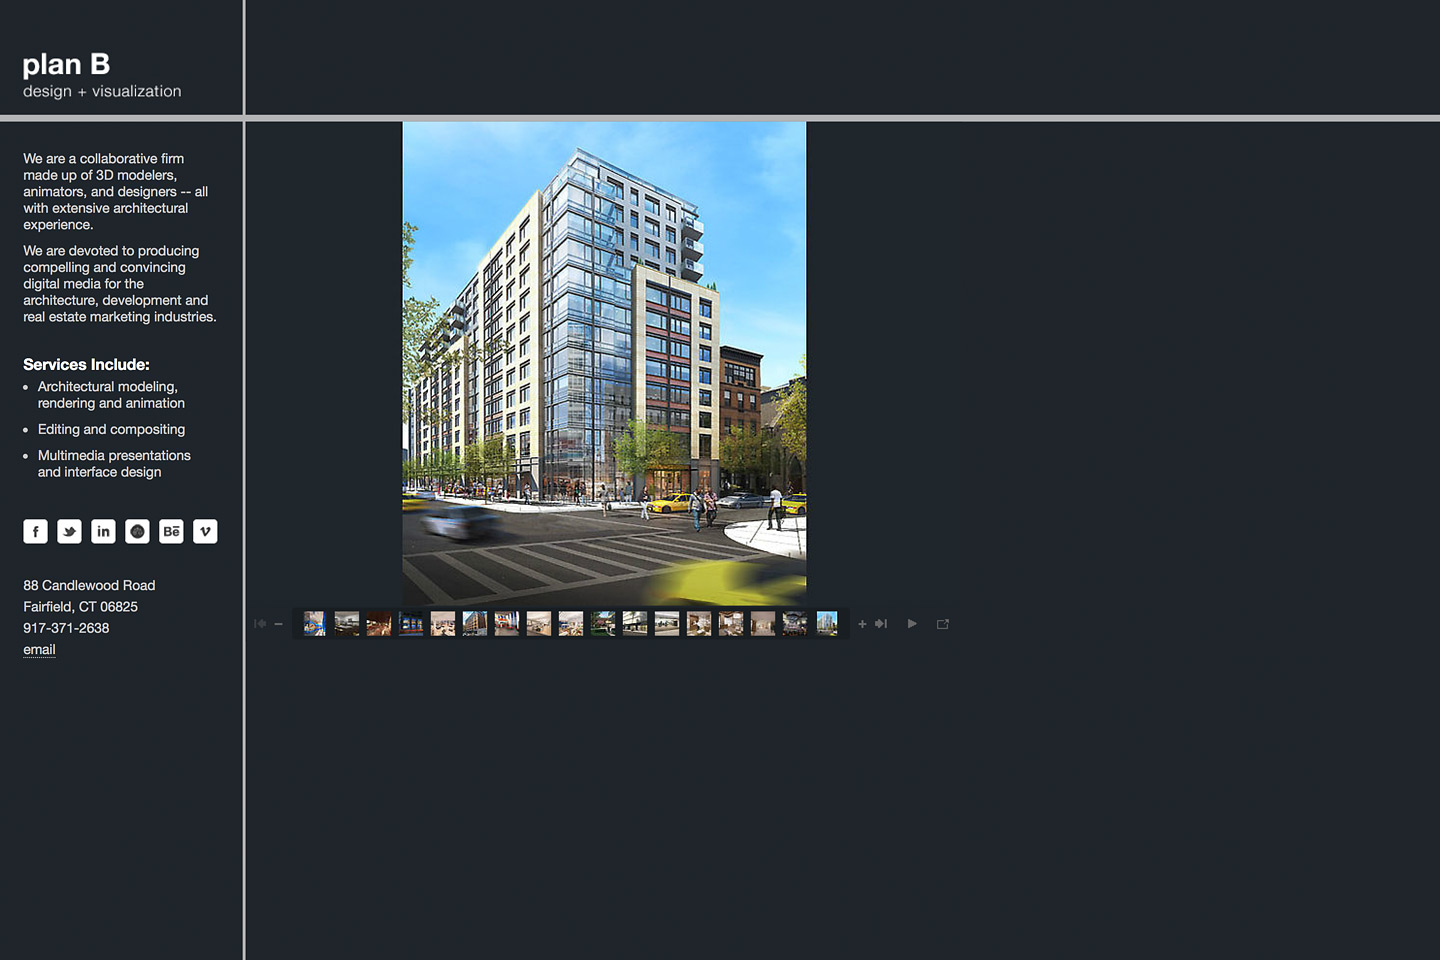 a screen capture of the planbdesign.net website featuring a rendering of a mixed use highrise building located on st. nicholas avenue in harlem